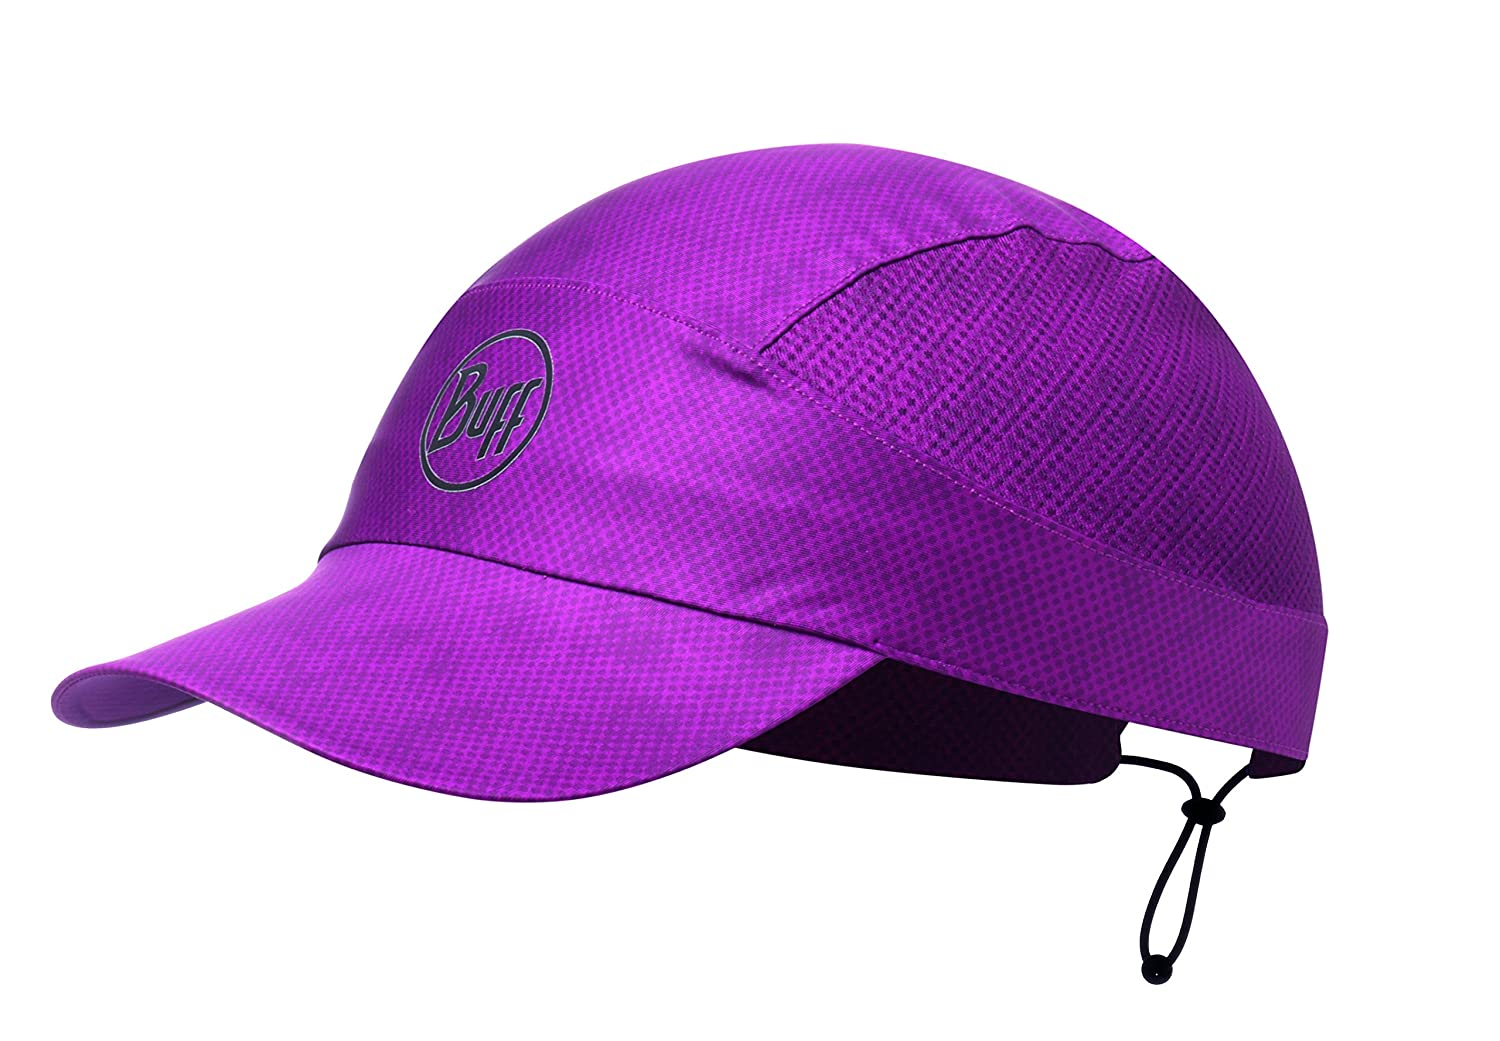 9bc4b858 BUFF is entering a new era with the Pack Run Cap developed by in-house  experts and tested by professional athletes. The ultra-light cap has been  designed ...